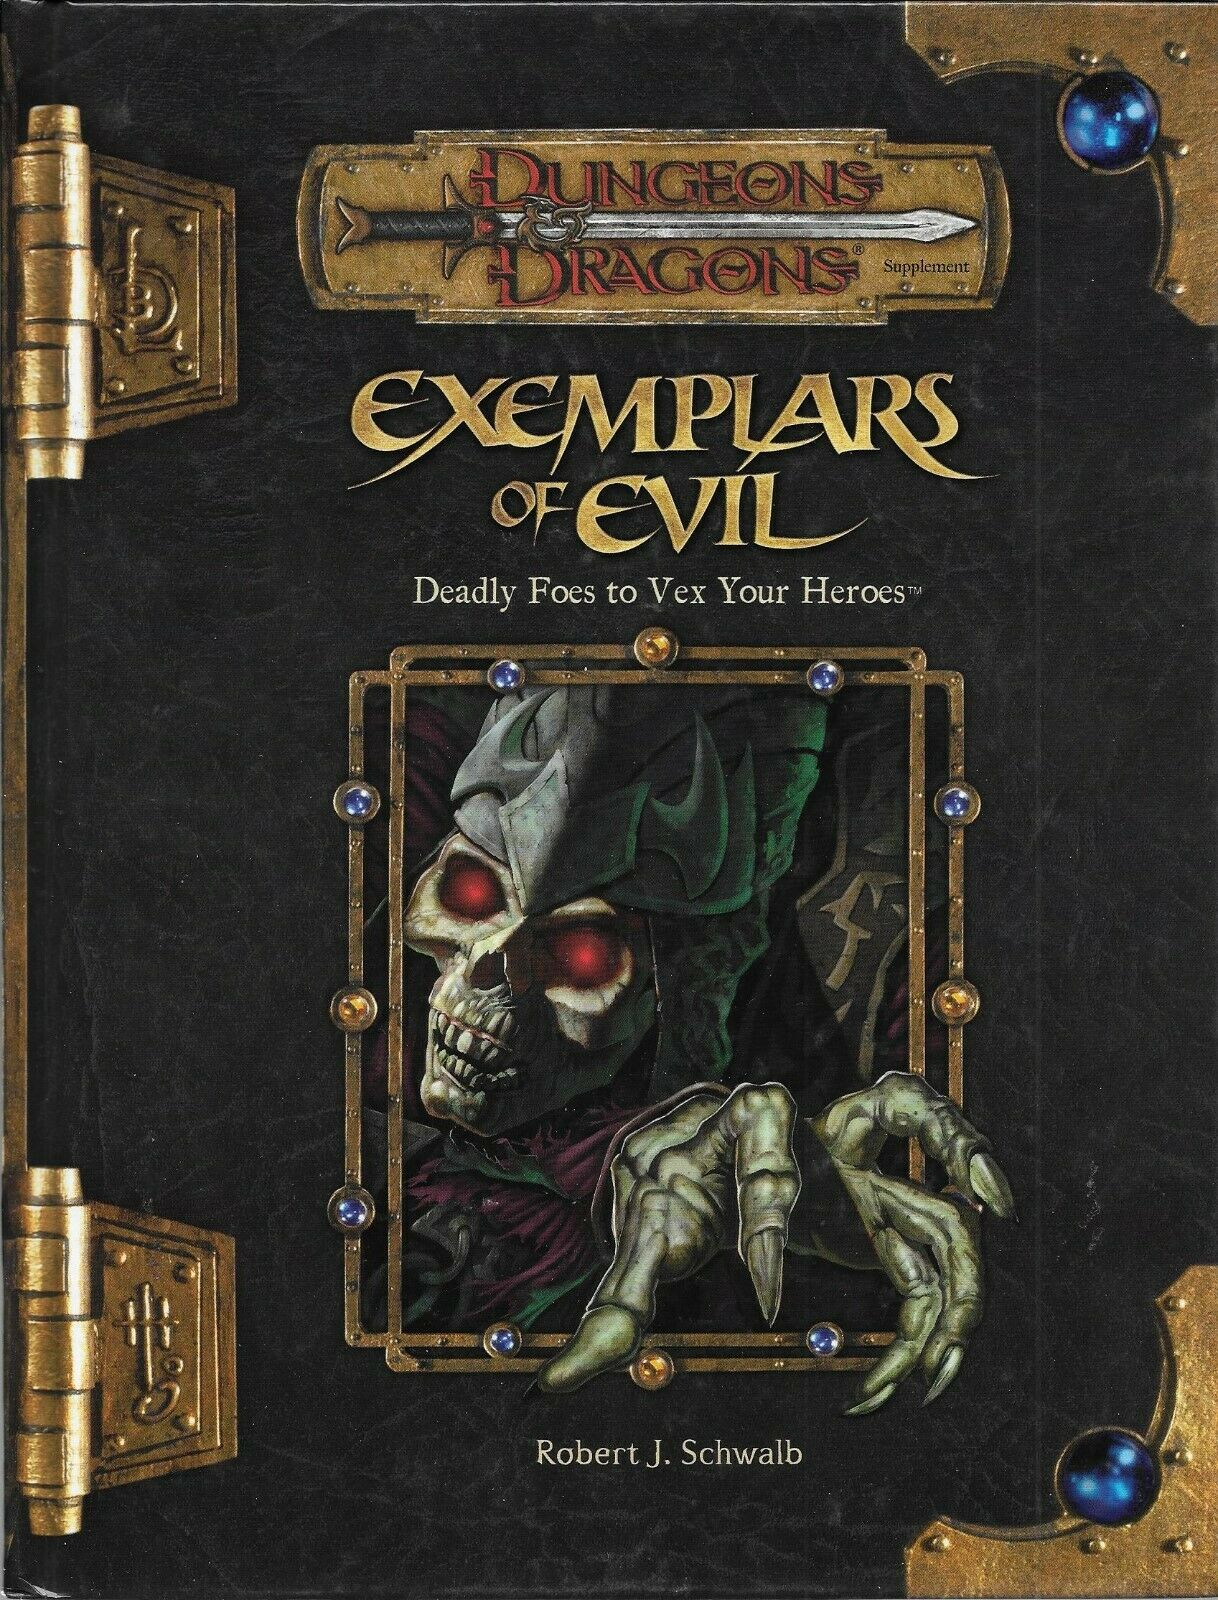 Dungeons & Dragons Exemplars of Evil  Deadly Foes to Vex Your Heroes 3.5 RPG d20